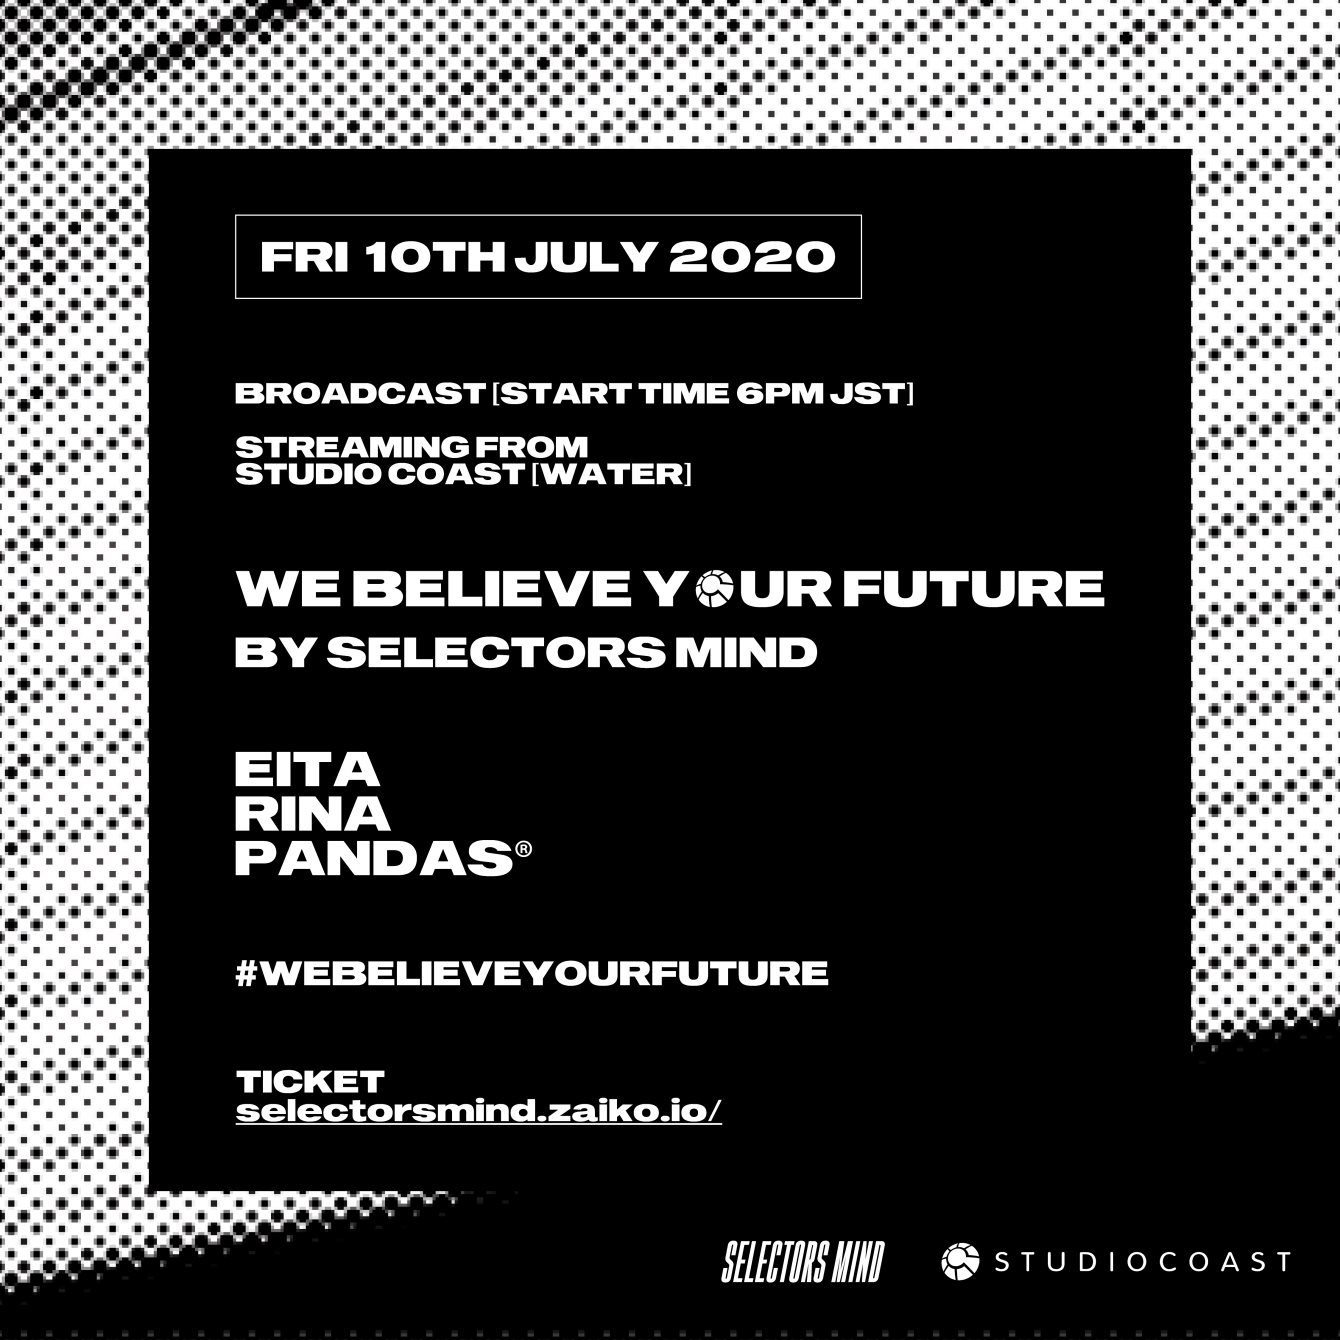 We Believe Your Future By Selectors Mind - Flyer front